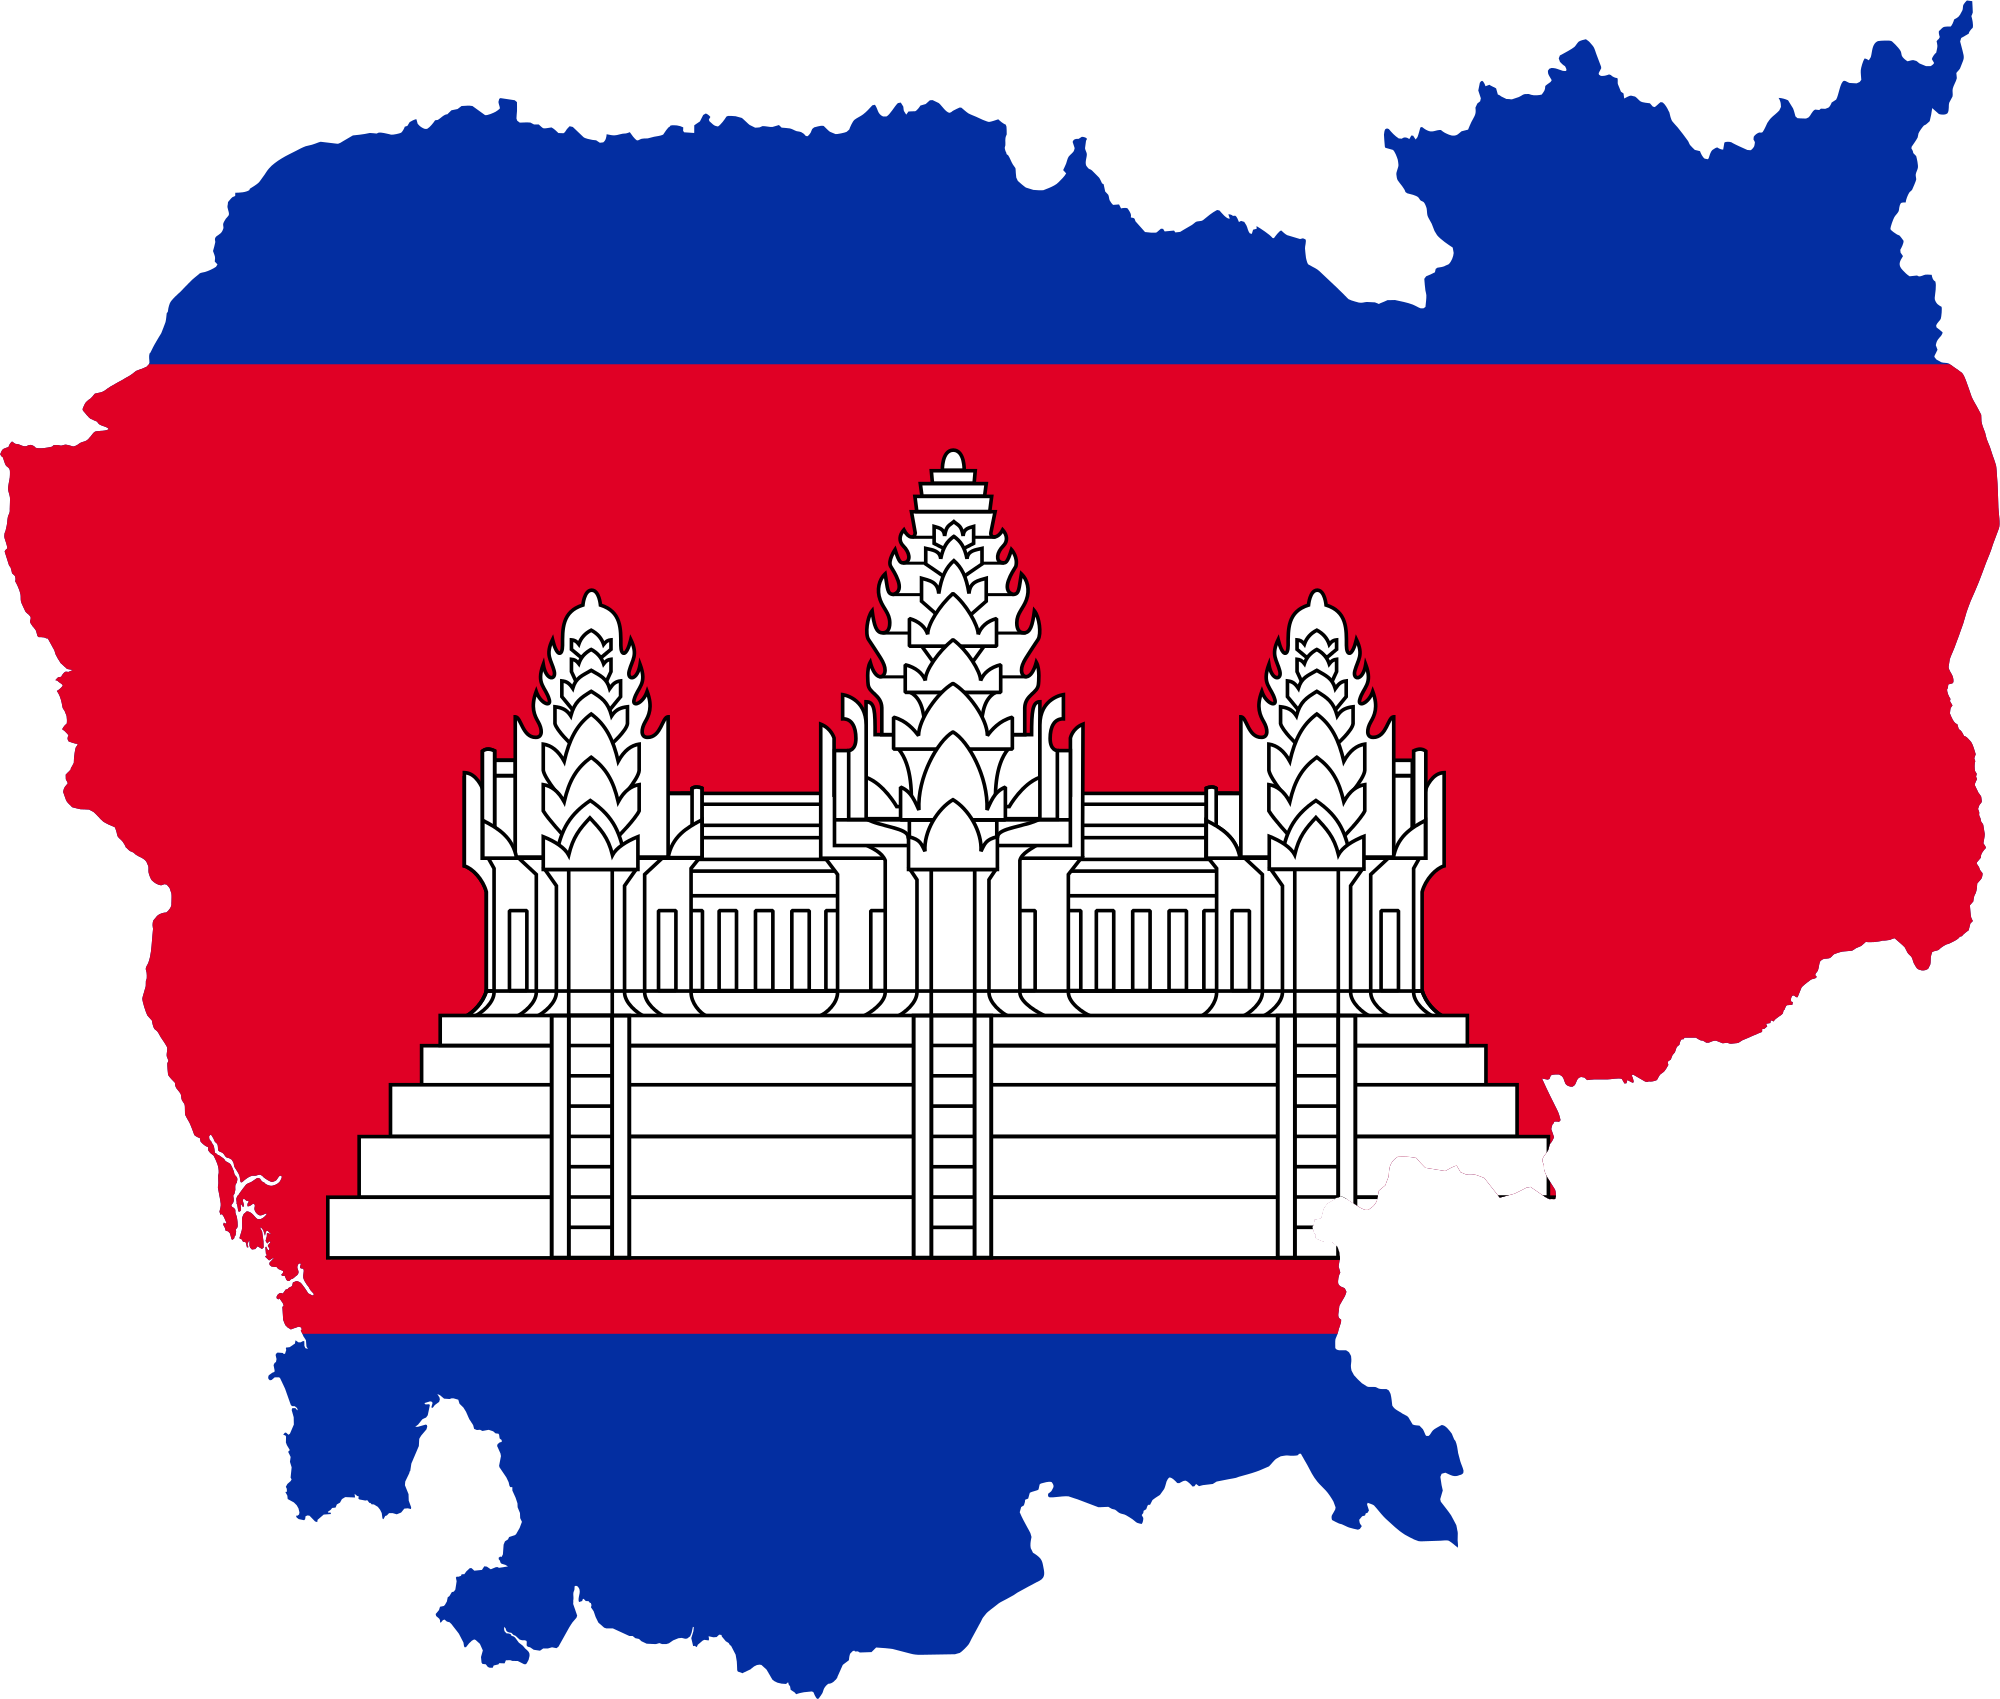 Palace clipart cambodia. Adventurous travels adventure travel